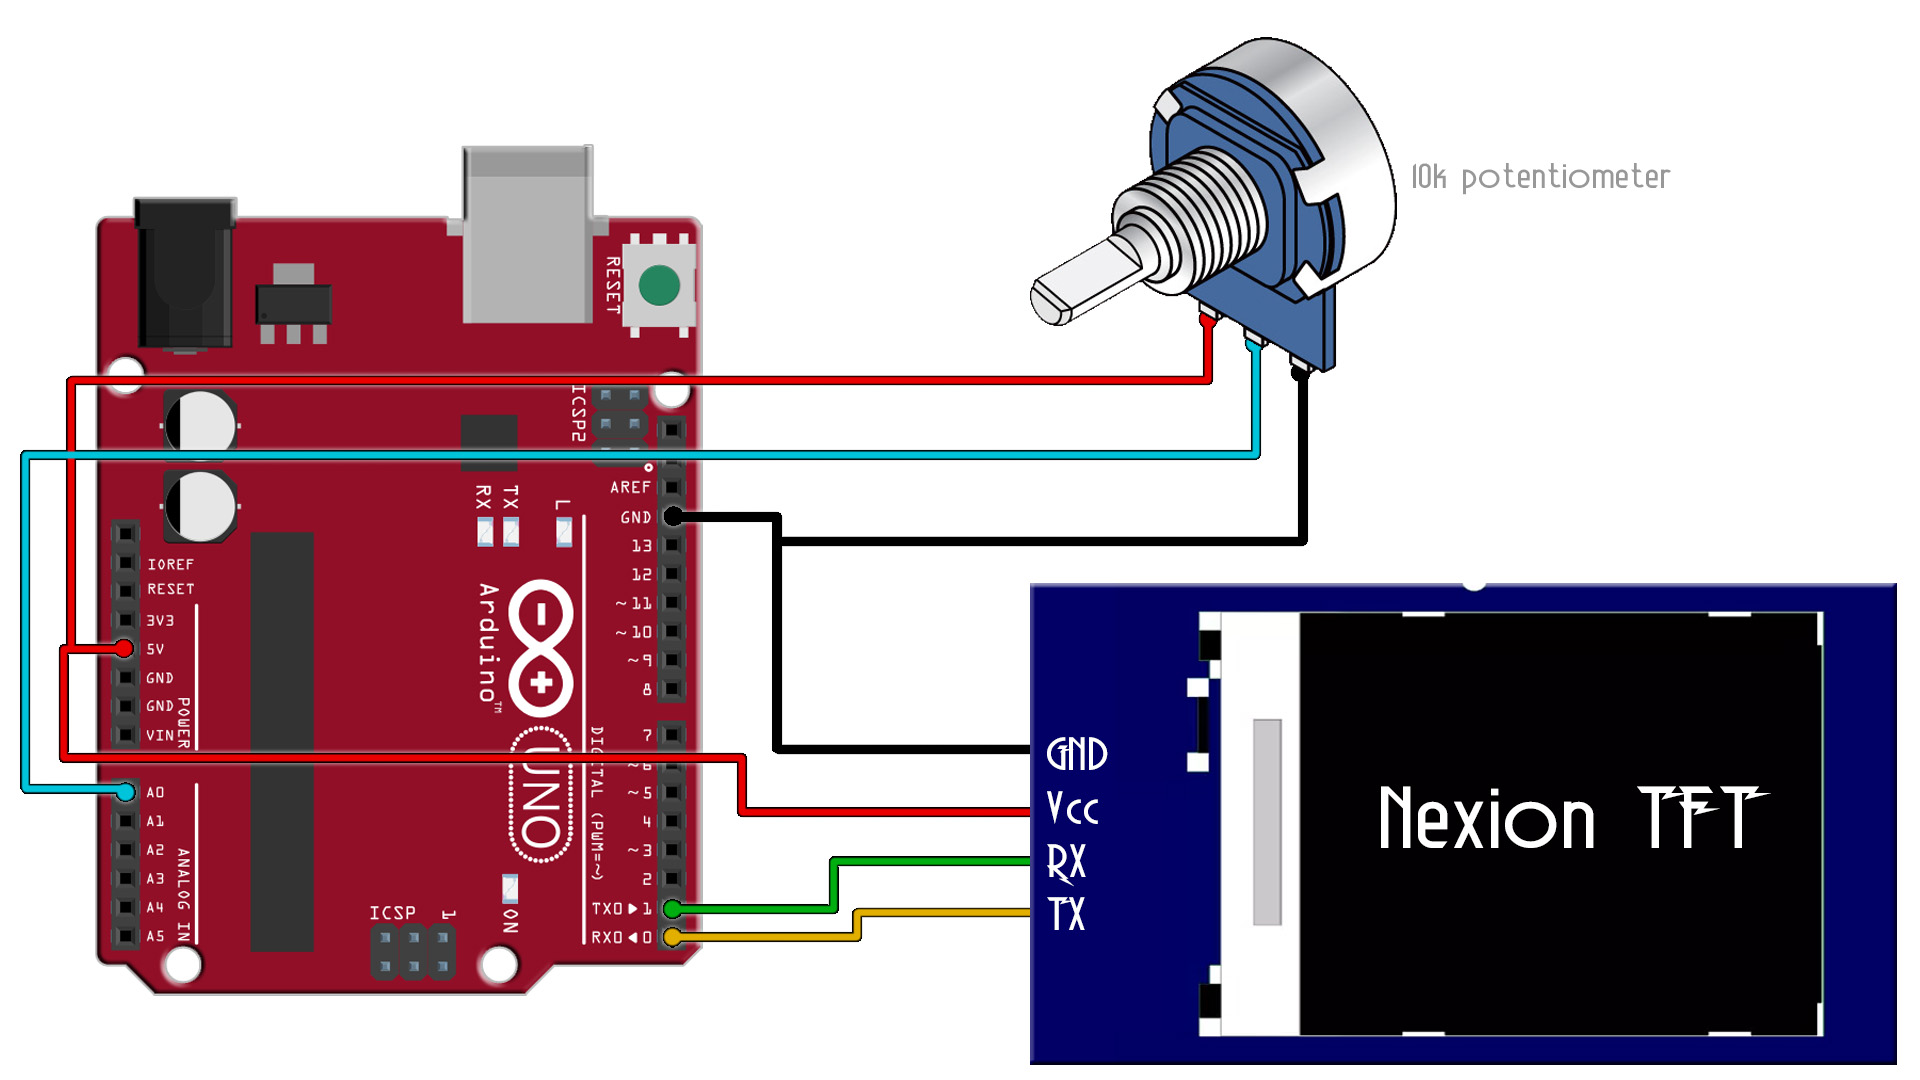 scheamtic Arduino NEXTION display potentiometer